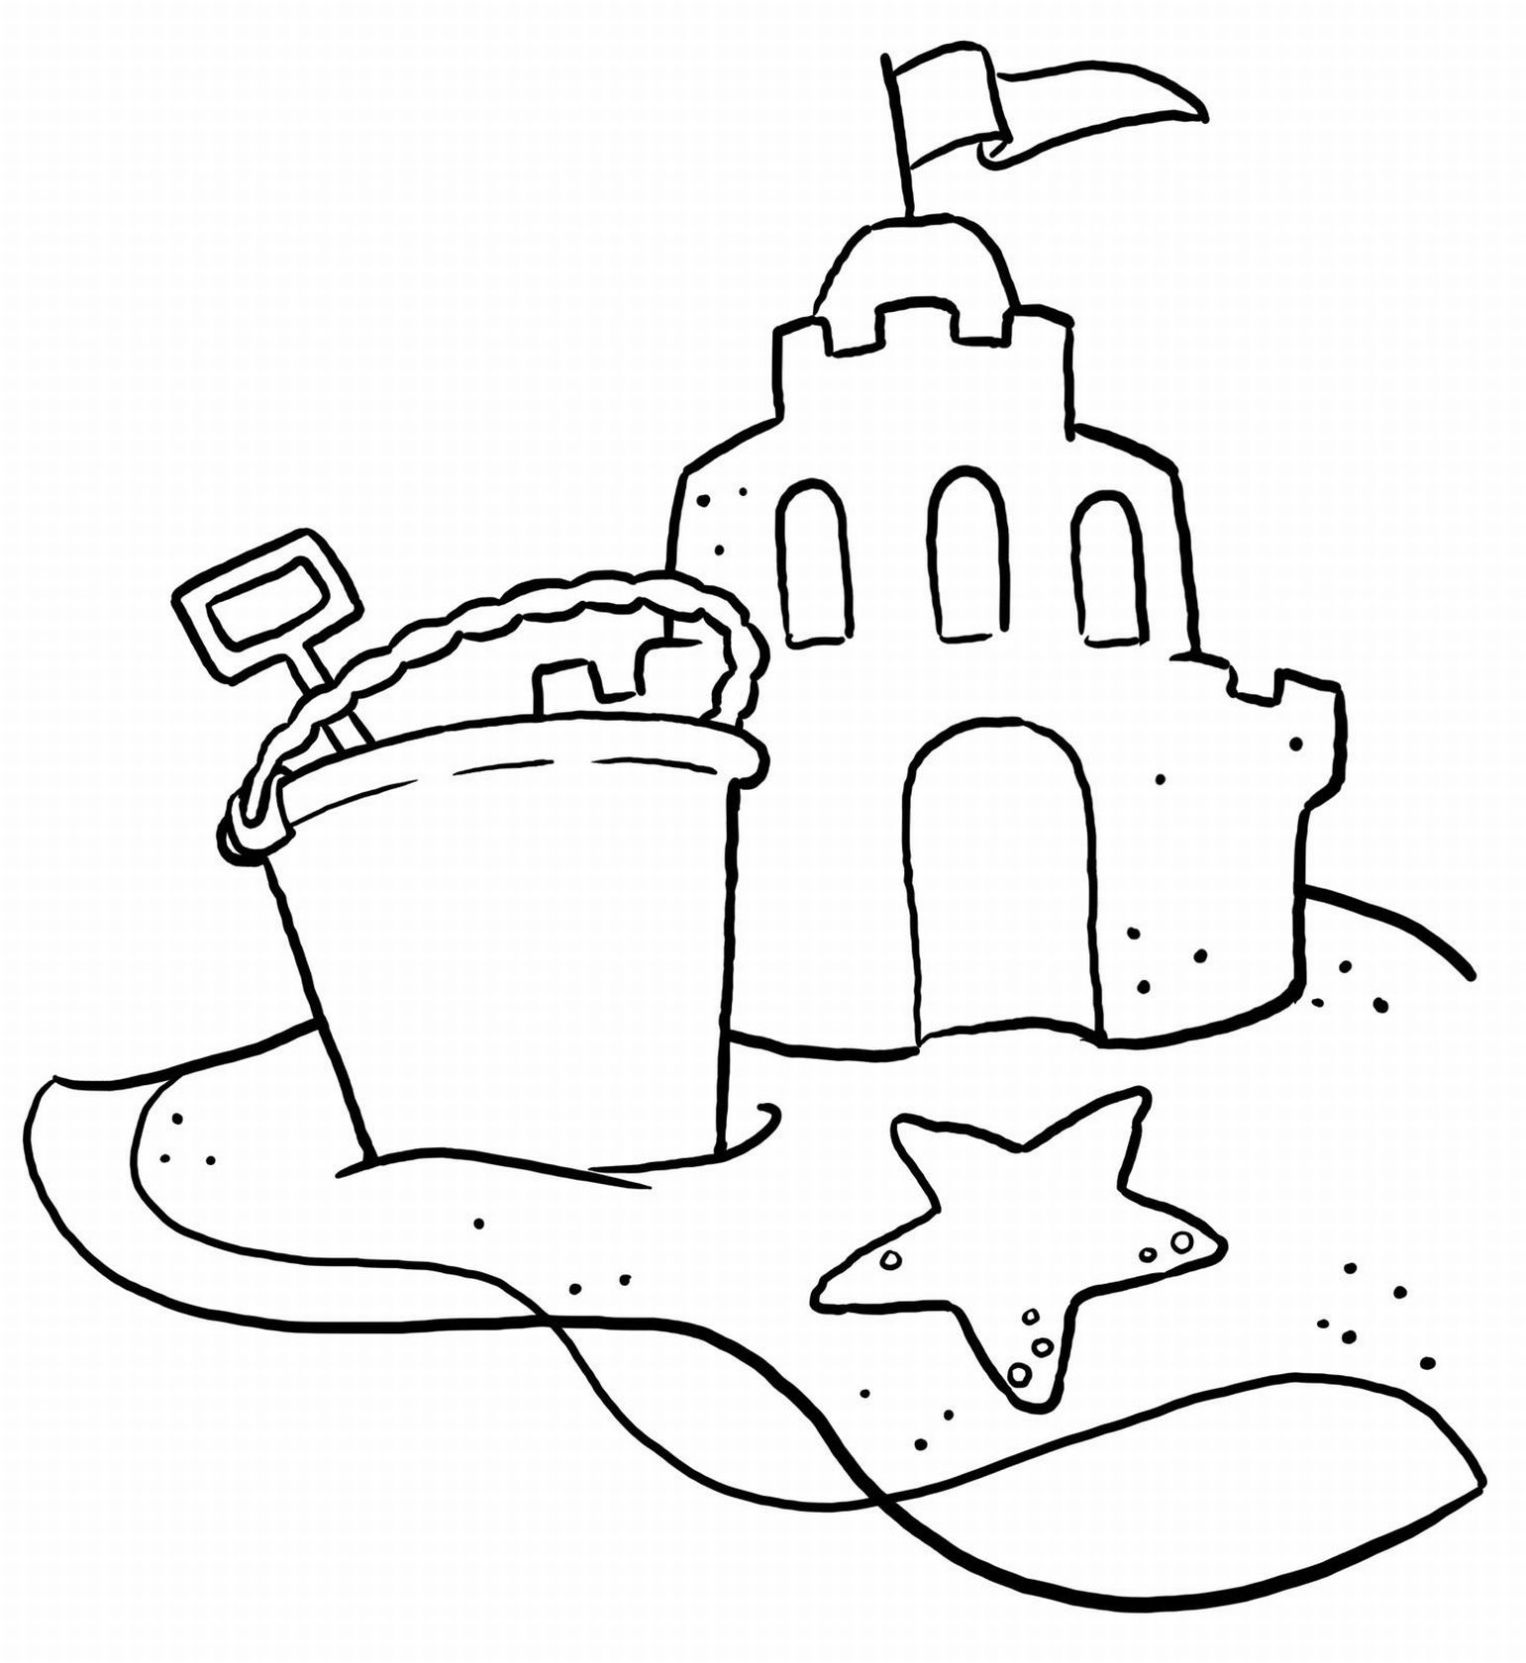 beech tree coloring pages - photo#26